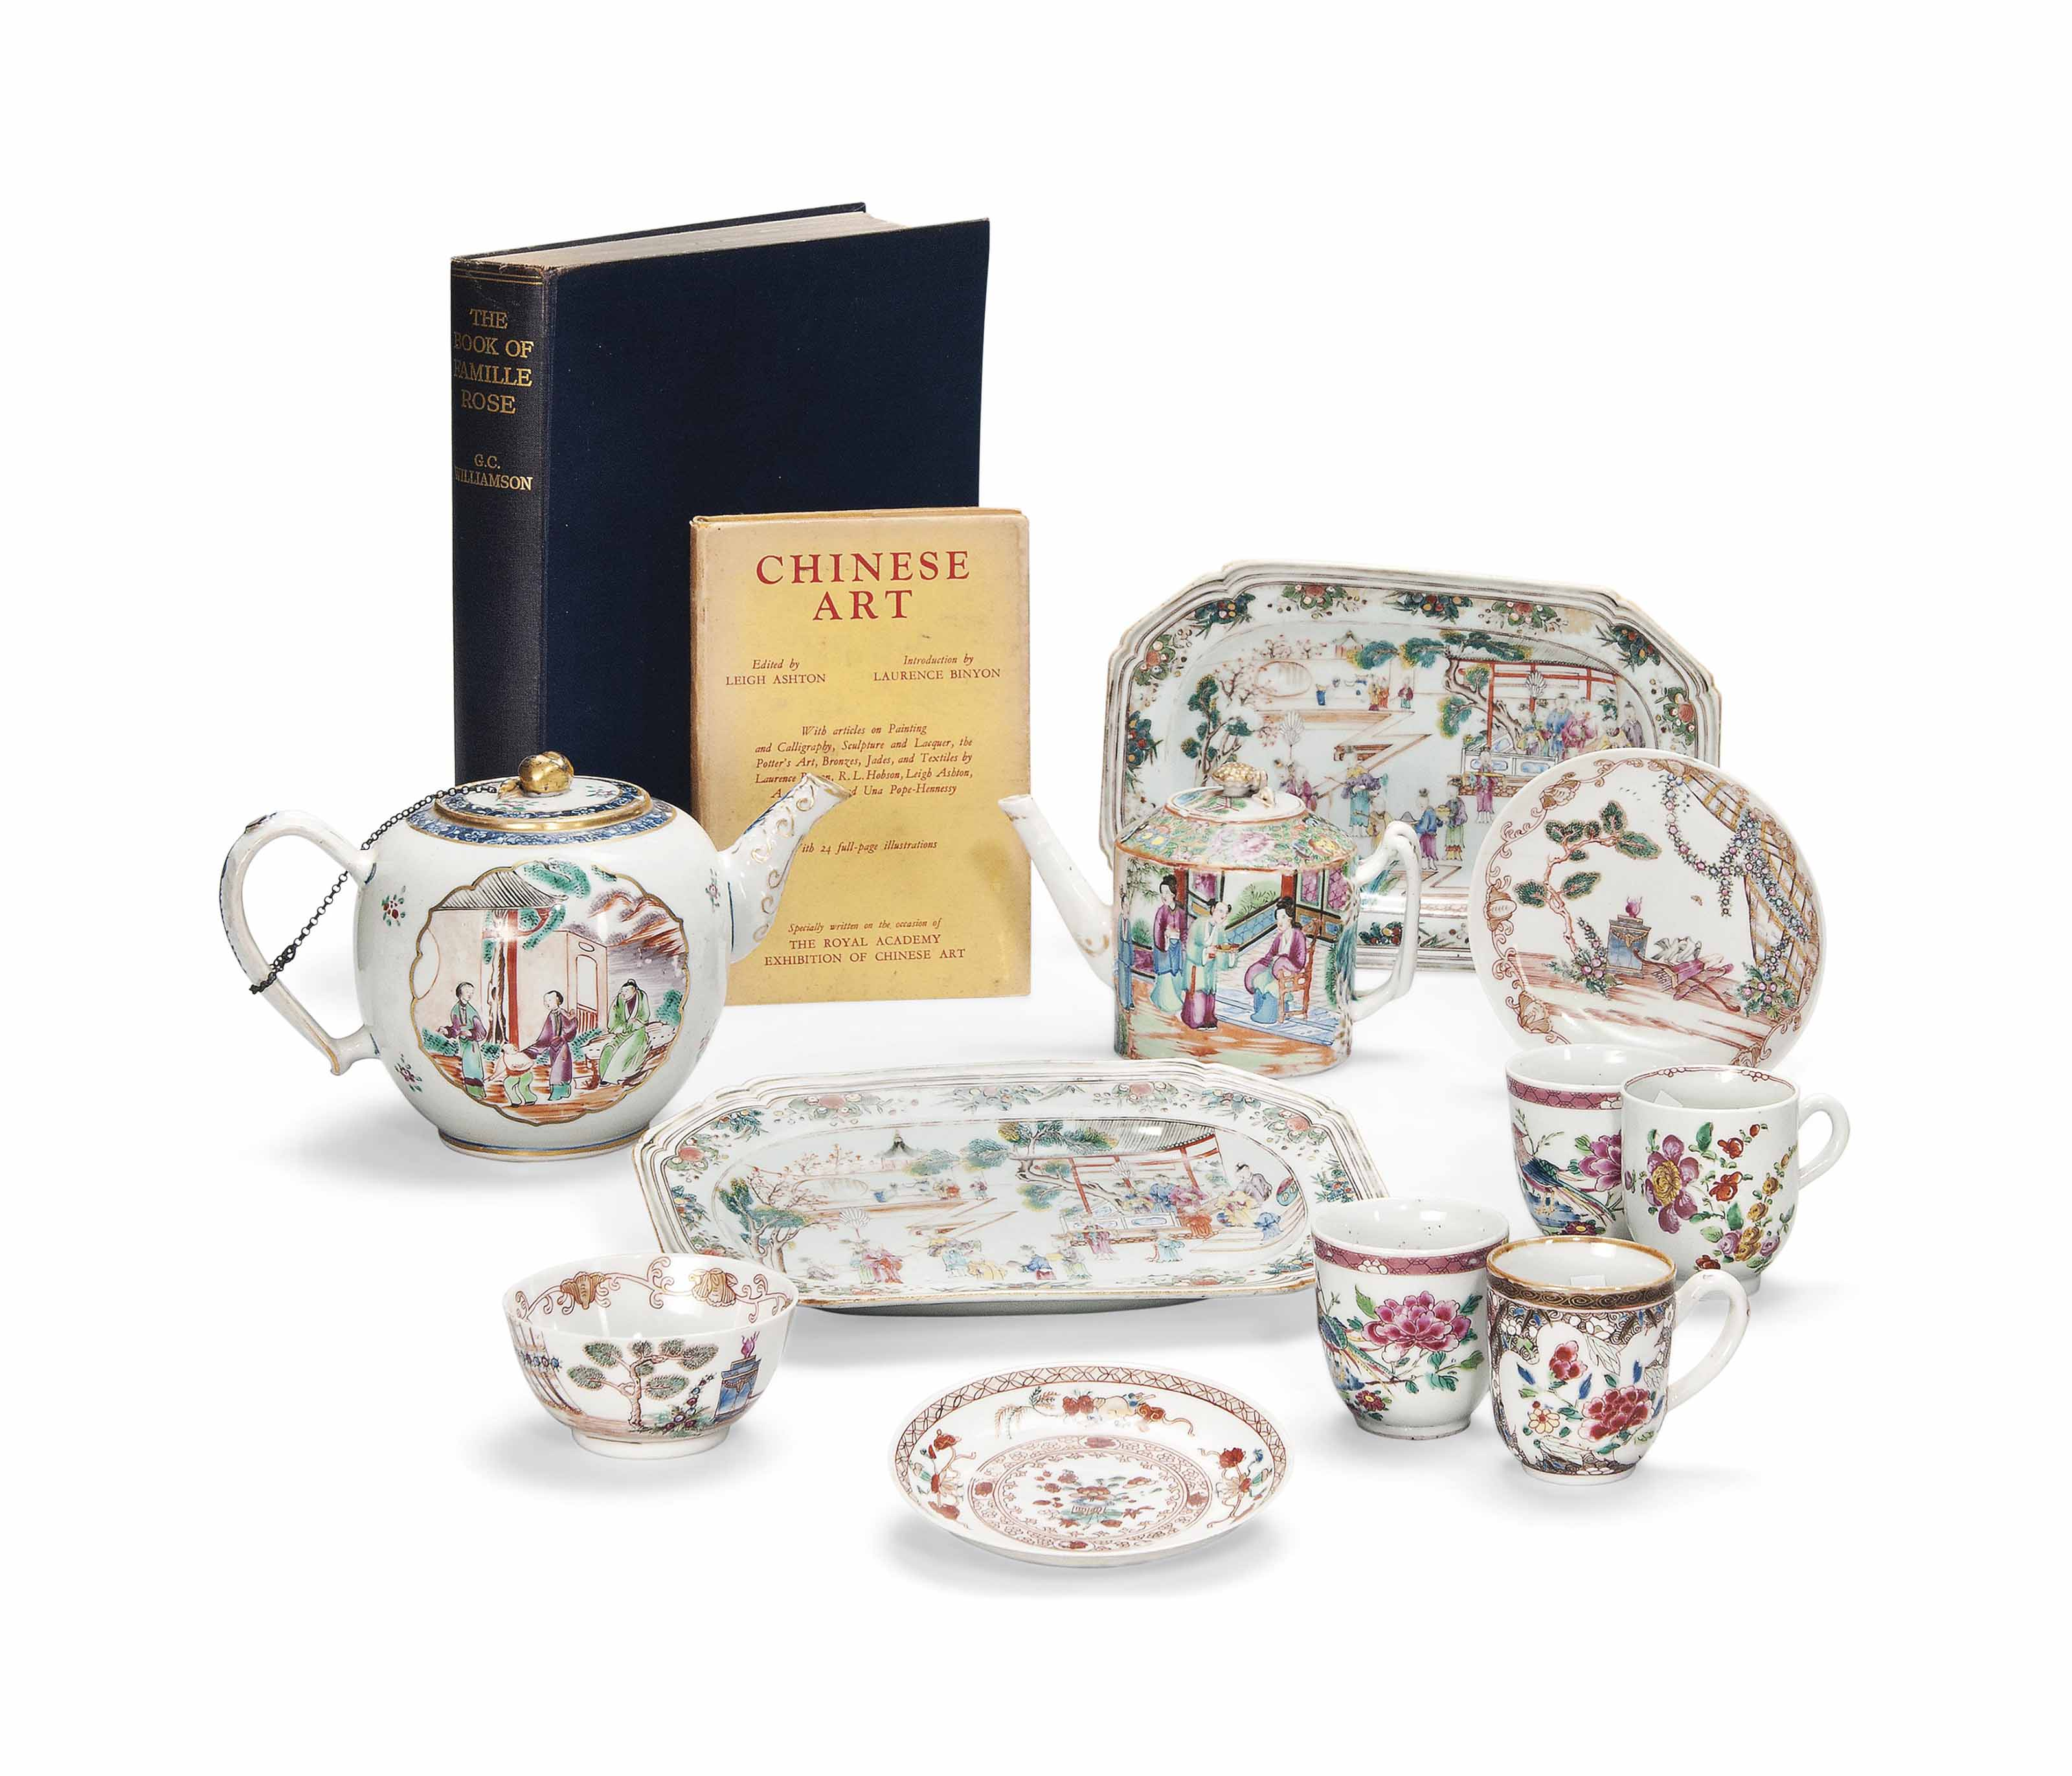 A SMALL COLLECTION OF FAMILLE ROSE CHINESE EXPORT PORCELAIN AND TWO REFERENCE BOOKS